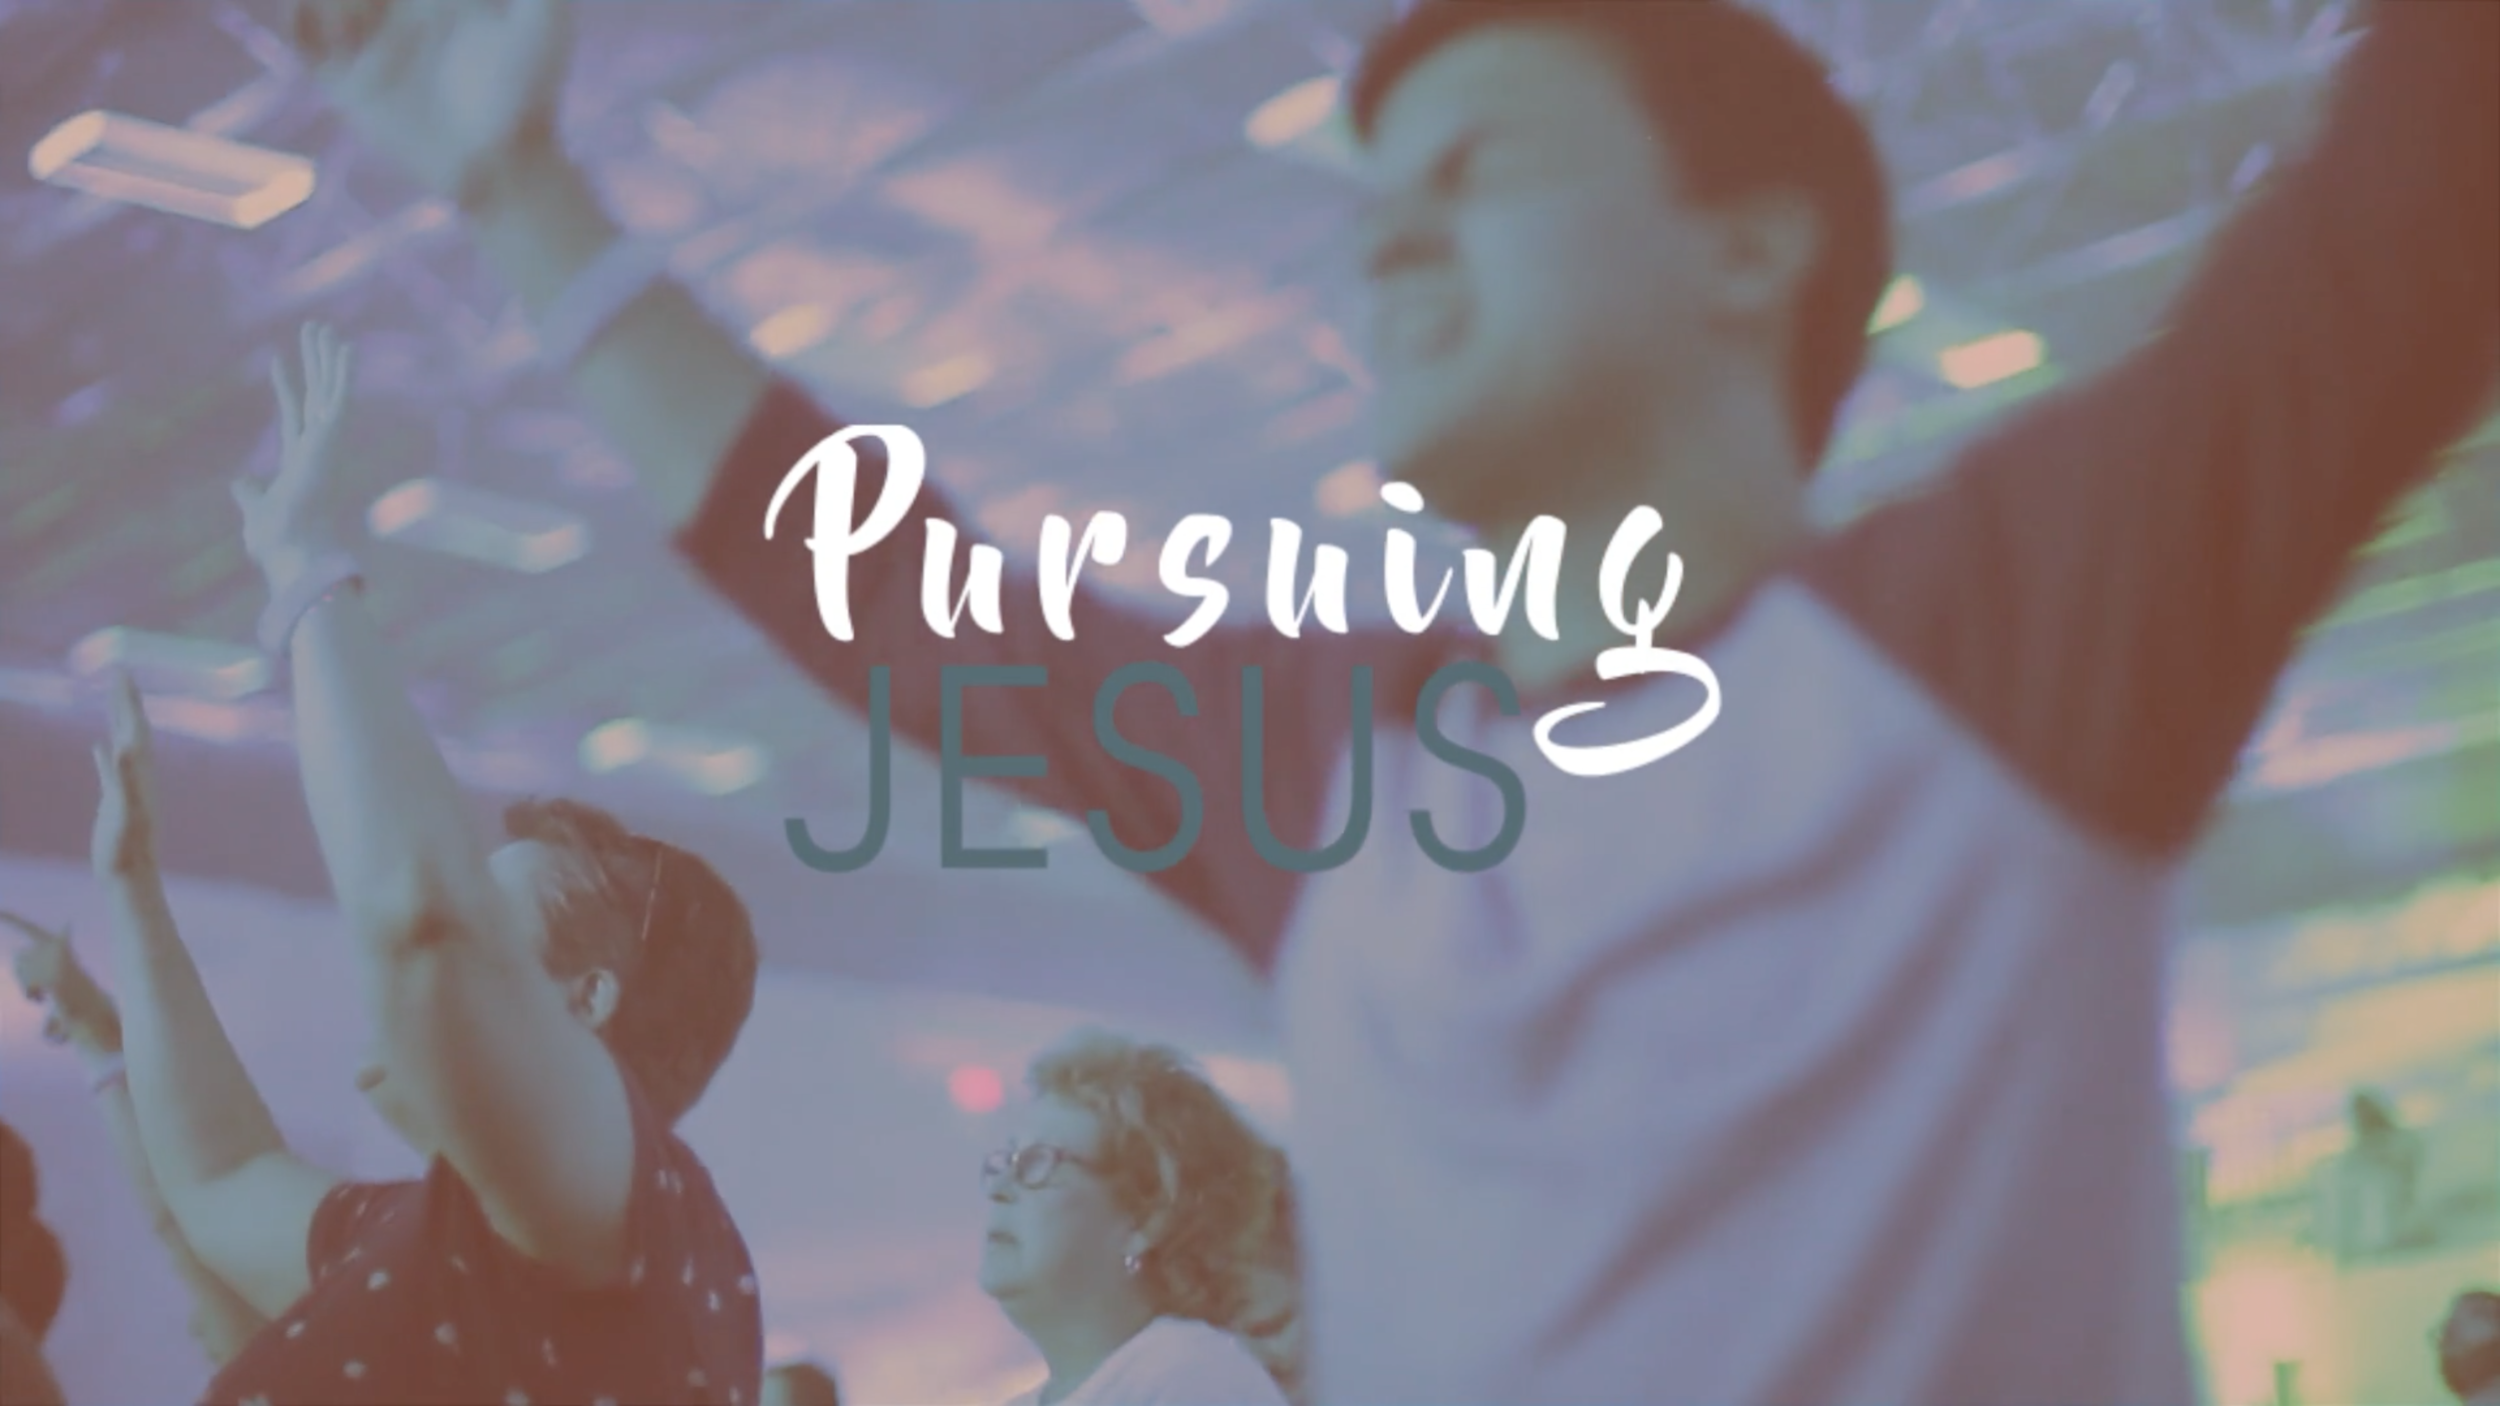 PURSUING Jesus - PURSUING Jesus means that He comes first in our lives. A PURSUING Jesus Church trusts in following His lead in all aspects of our lives and church.